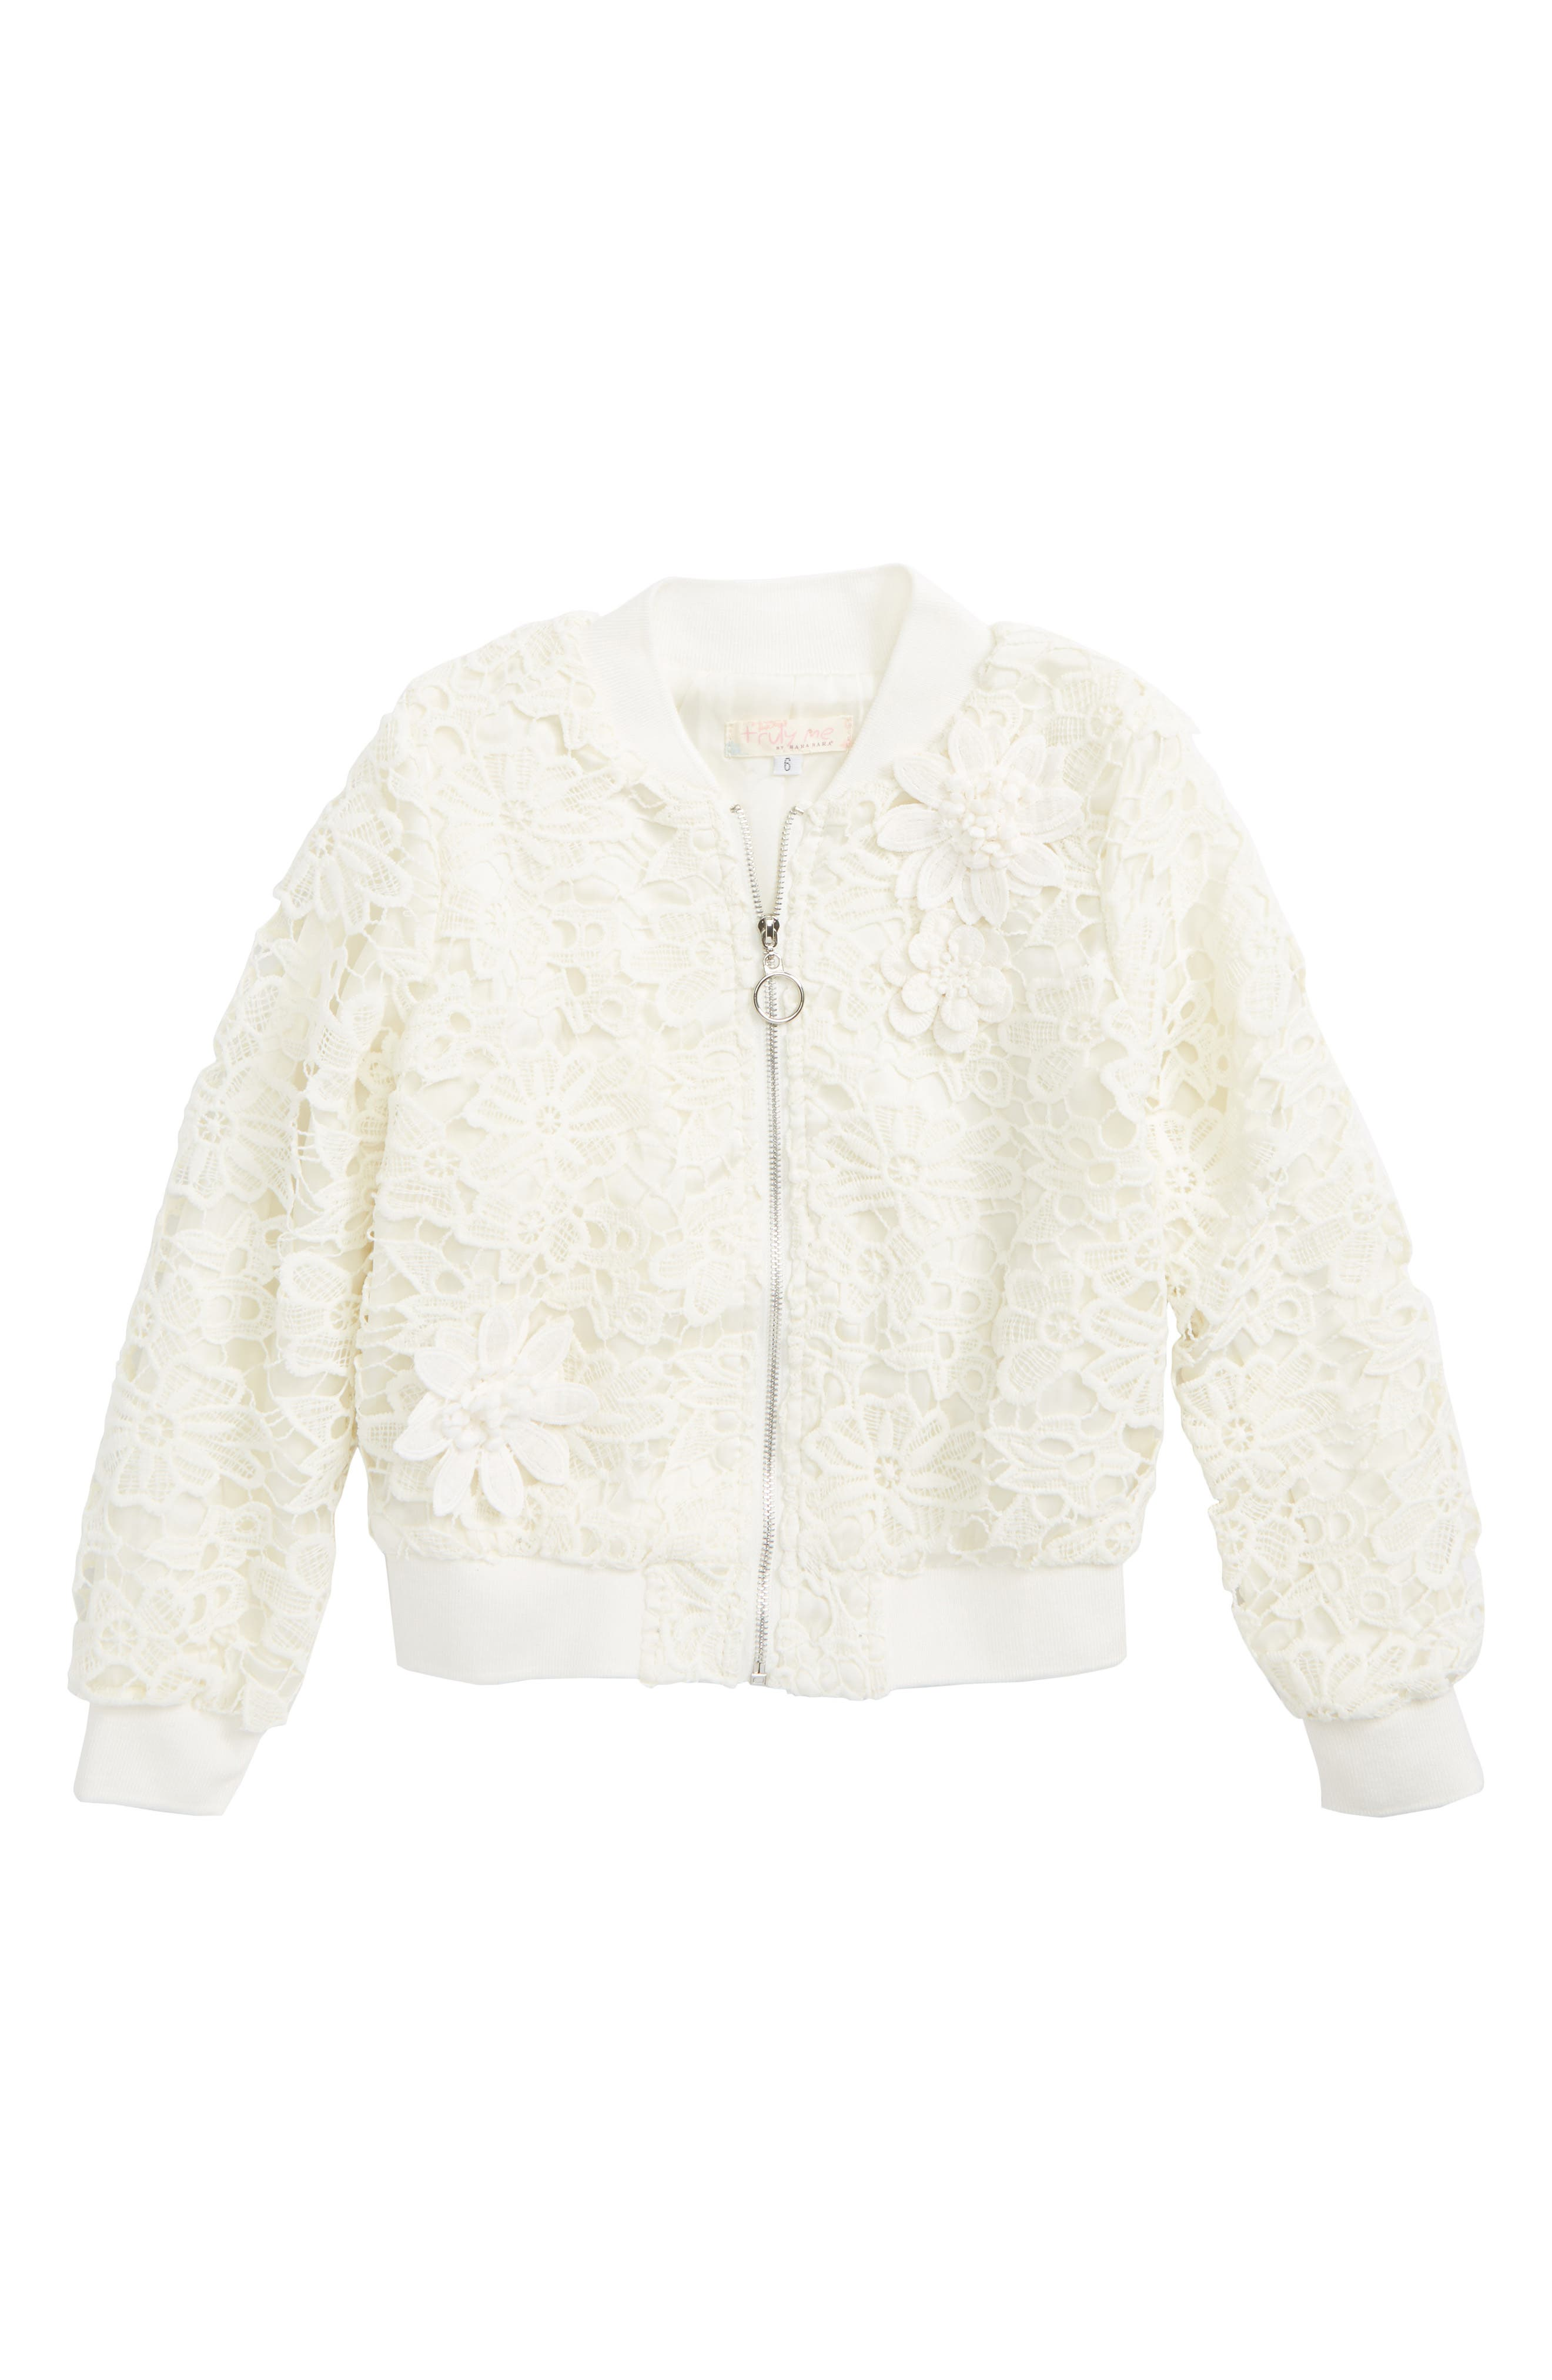 Lace Bomber Jacket,                         Main,                         color, 900